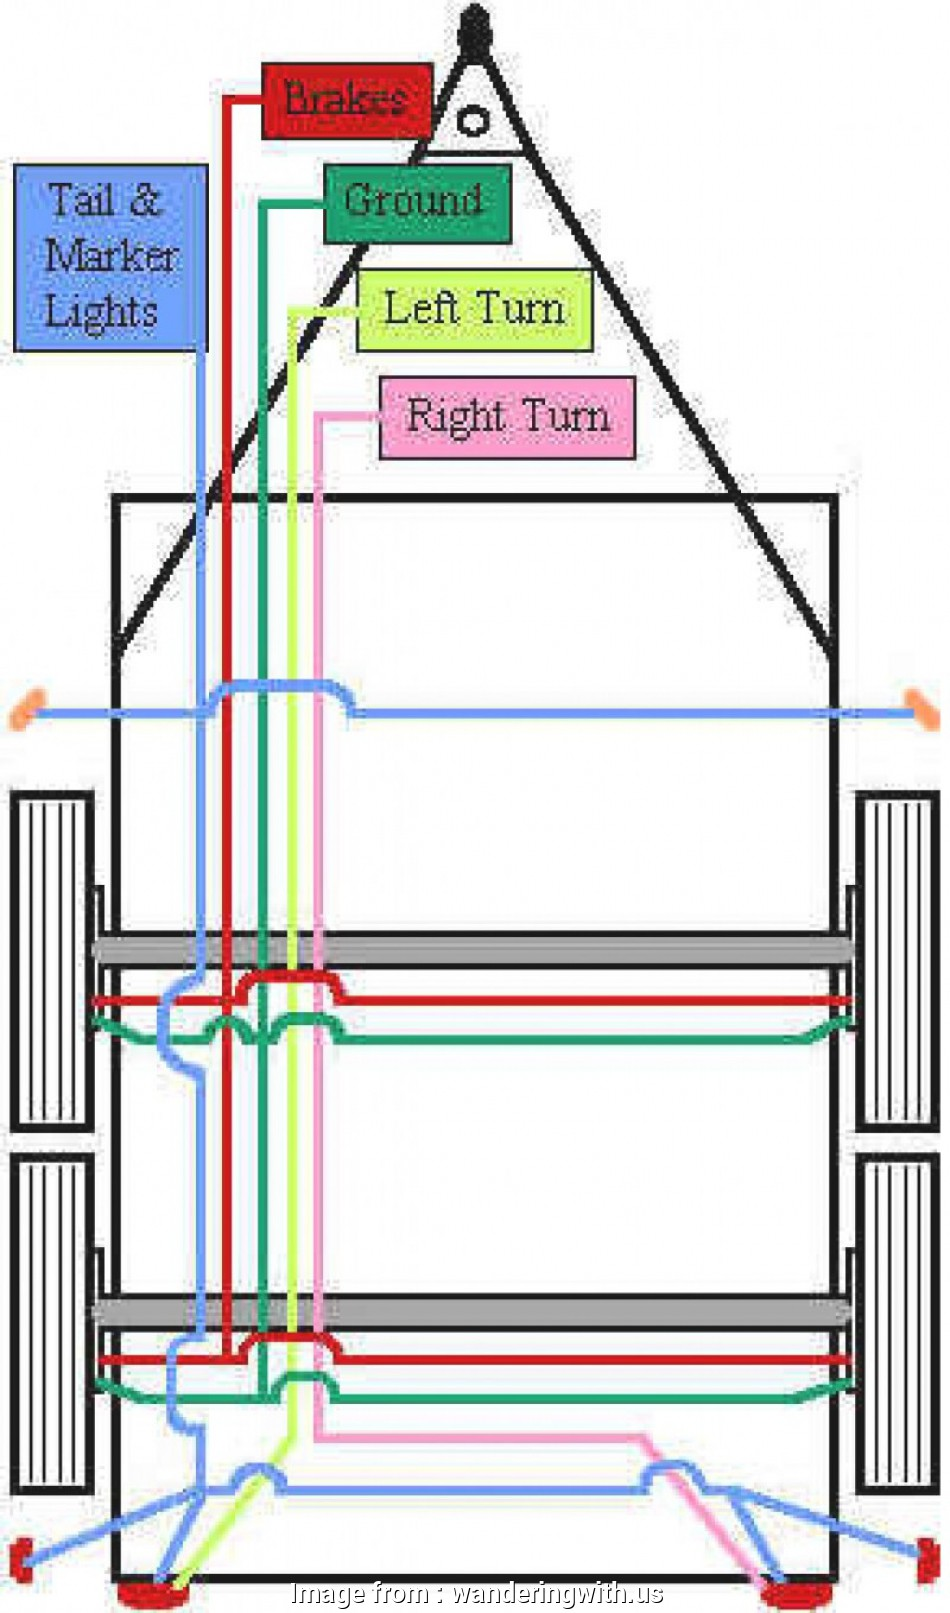 Wiring Diagram  Utility Trailer With Electric Brakes Simple Wiring Diagram  Utility Trailer With